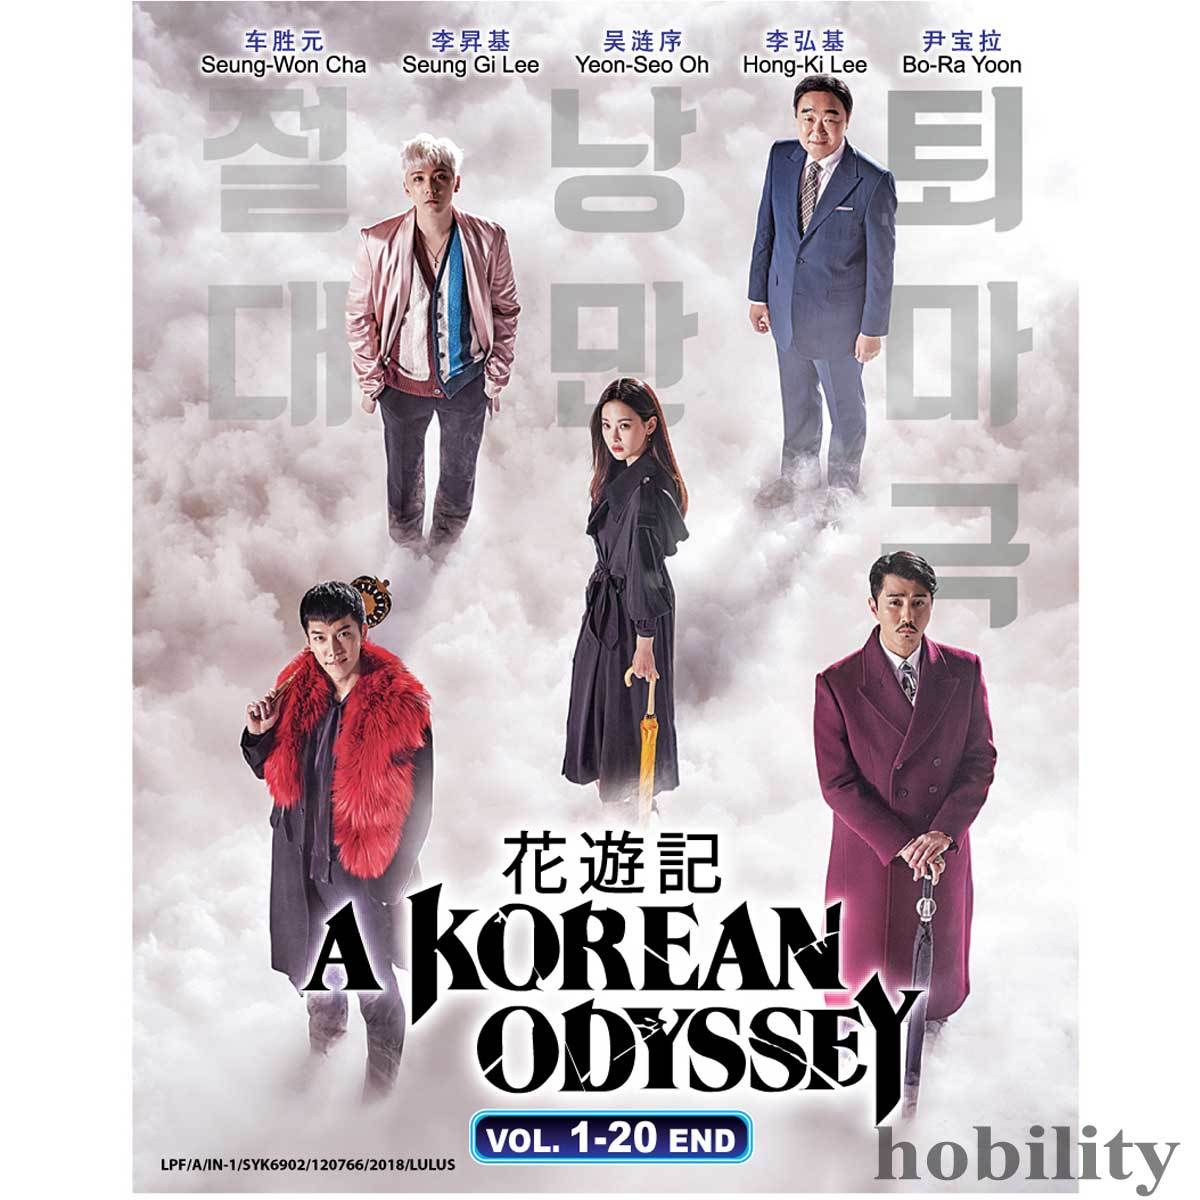 A Korean Odyssey (花遊記) VOL. 1 - 20 END Korean DVD